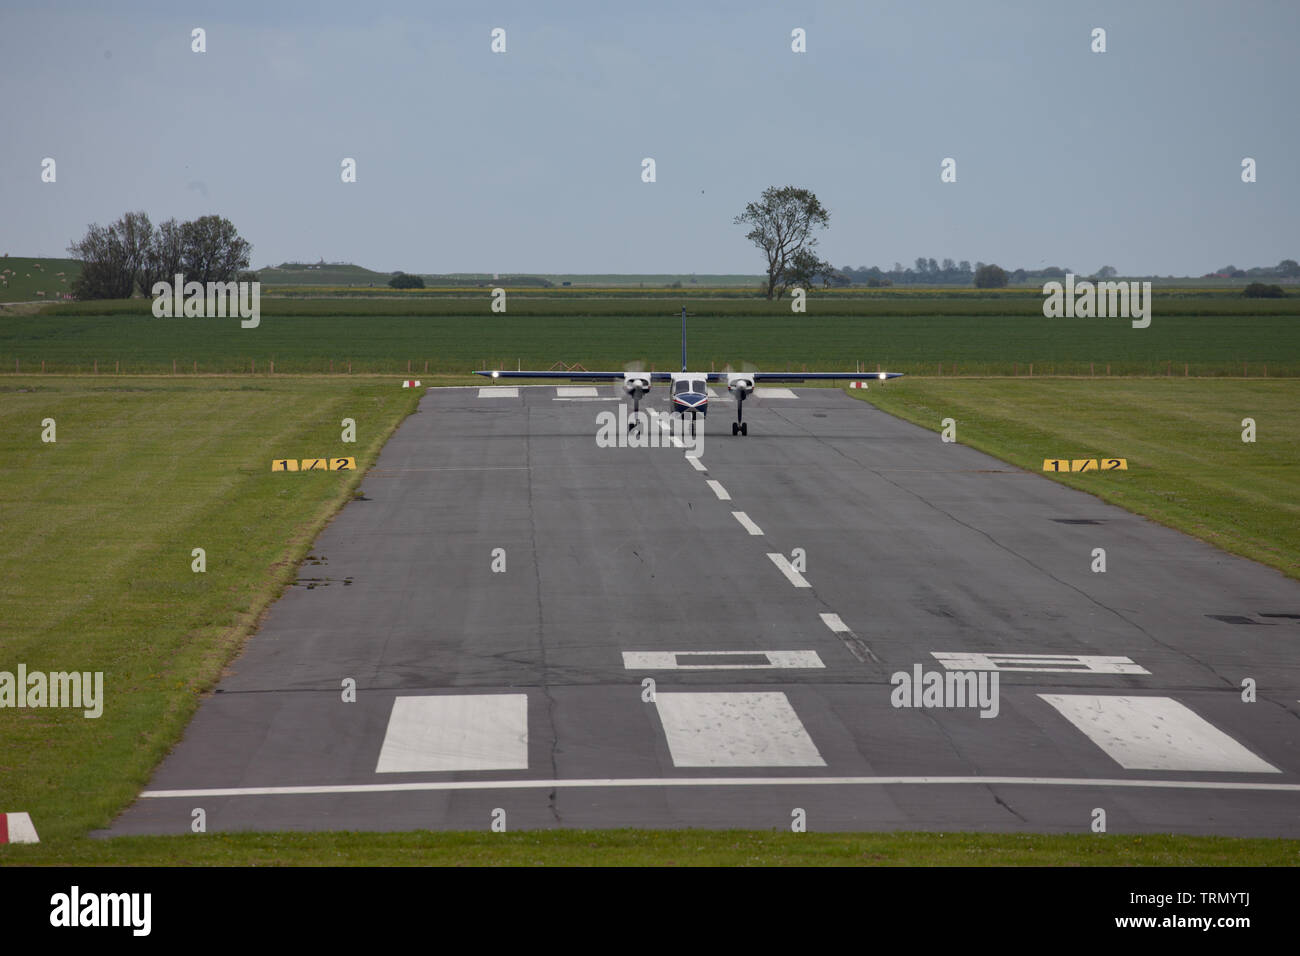 Twin engined aircraft taking off for East Frisian Islands. Germany. - Stock Image